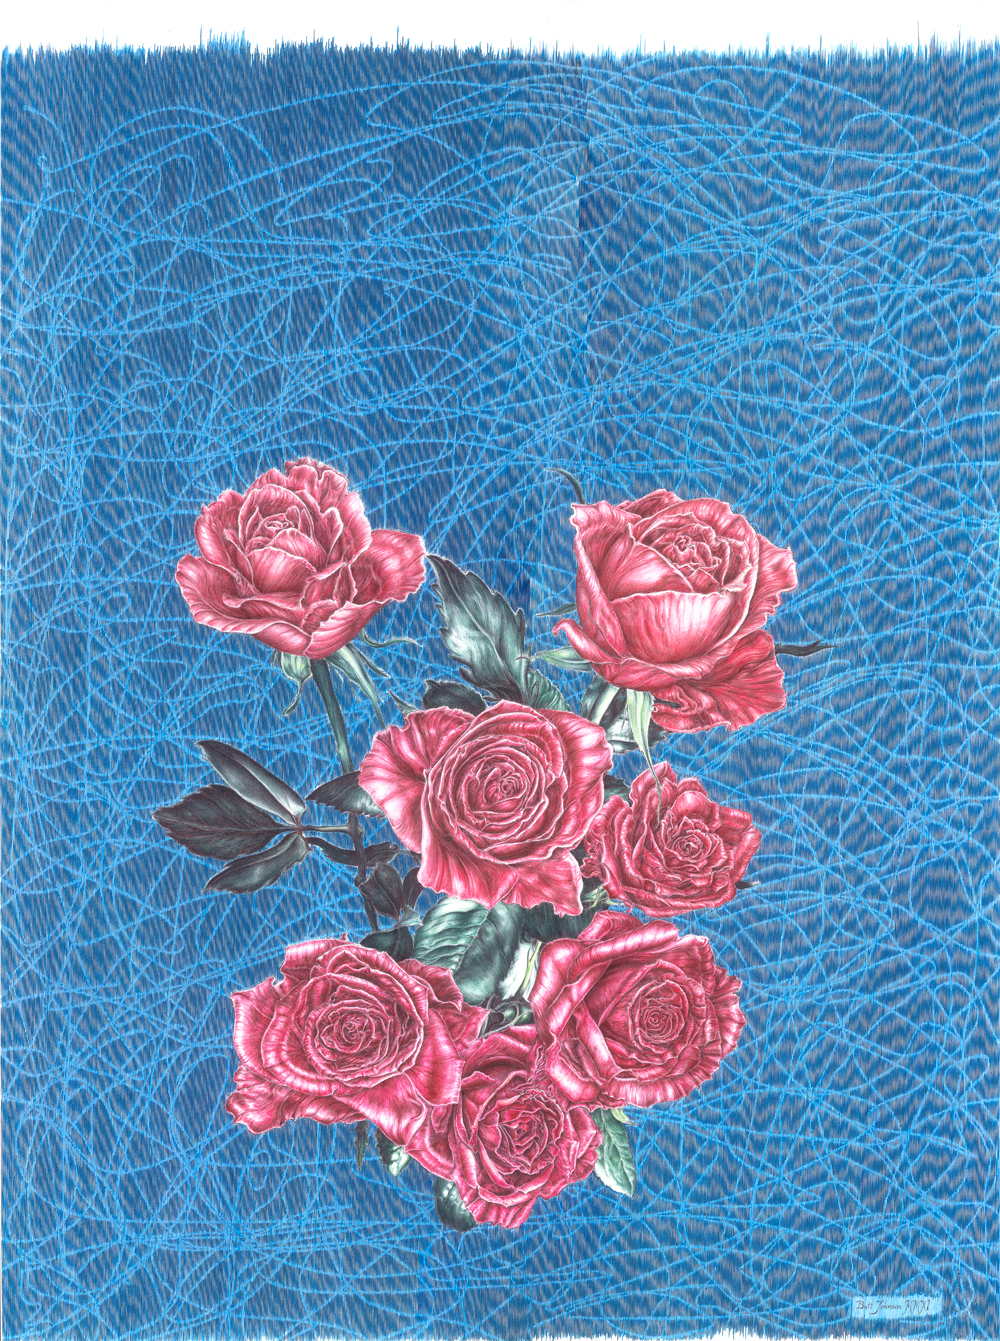 Untitled (Seven Roses)